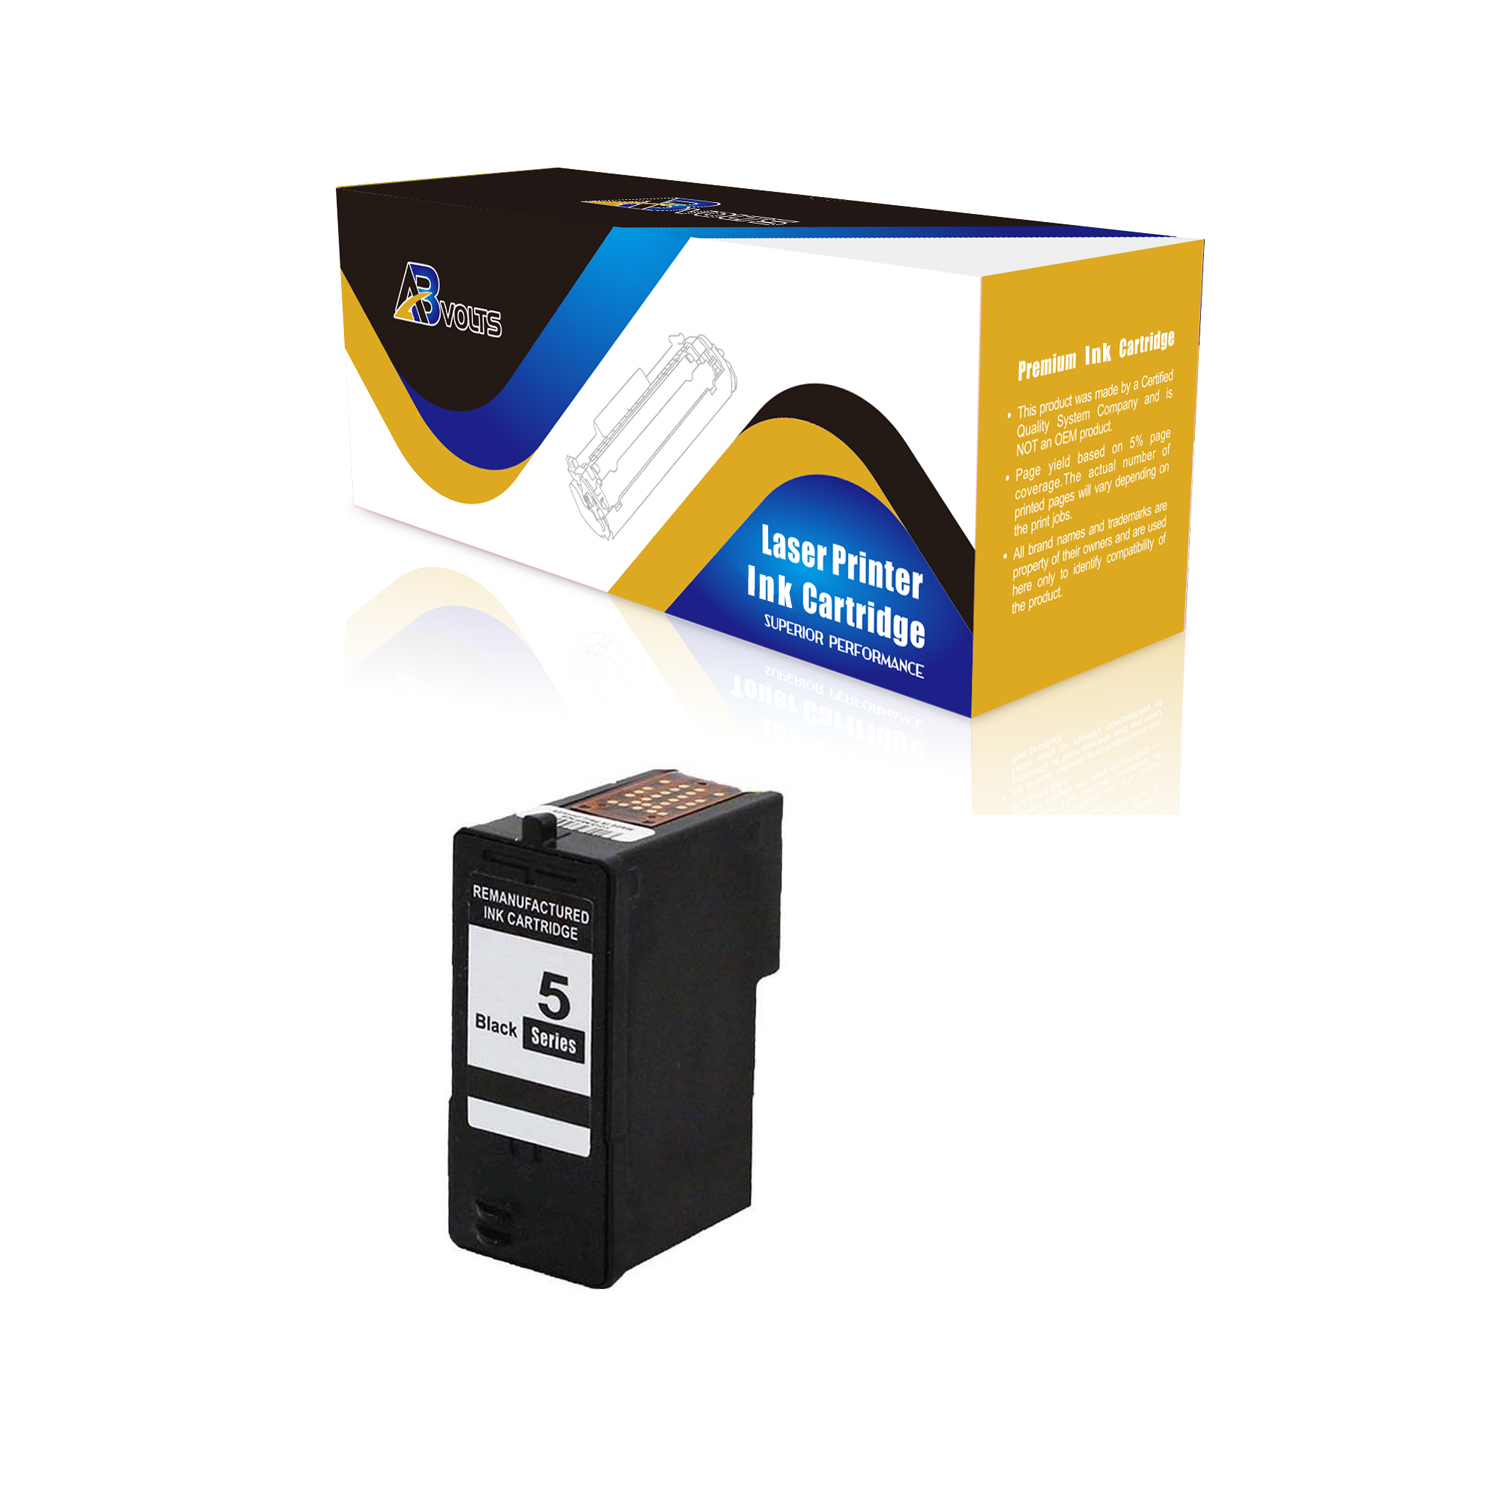 AB Volts Remanufactured Ink Cartridge Replacement for Dell M4640 for 922 924 942 944 946 962 964 922 924 942 944 962 964 Black,3-Pack